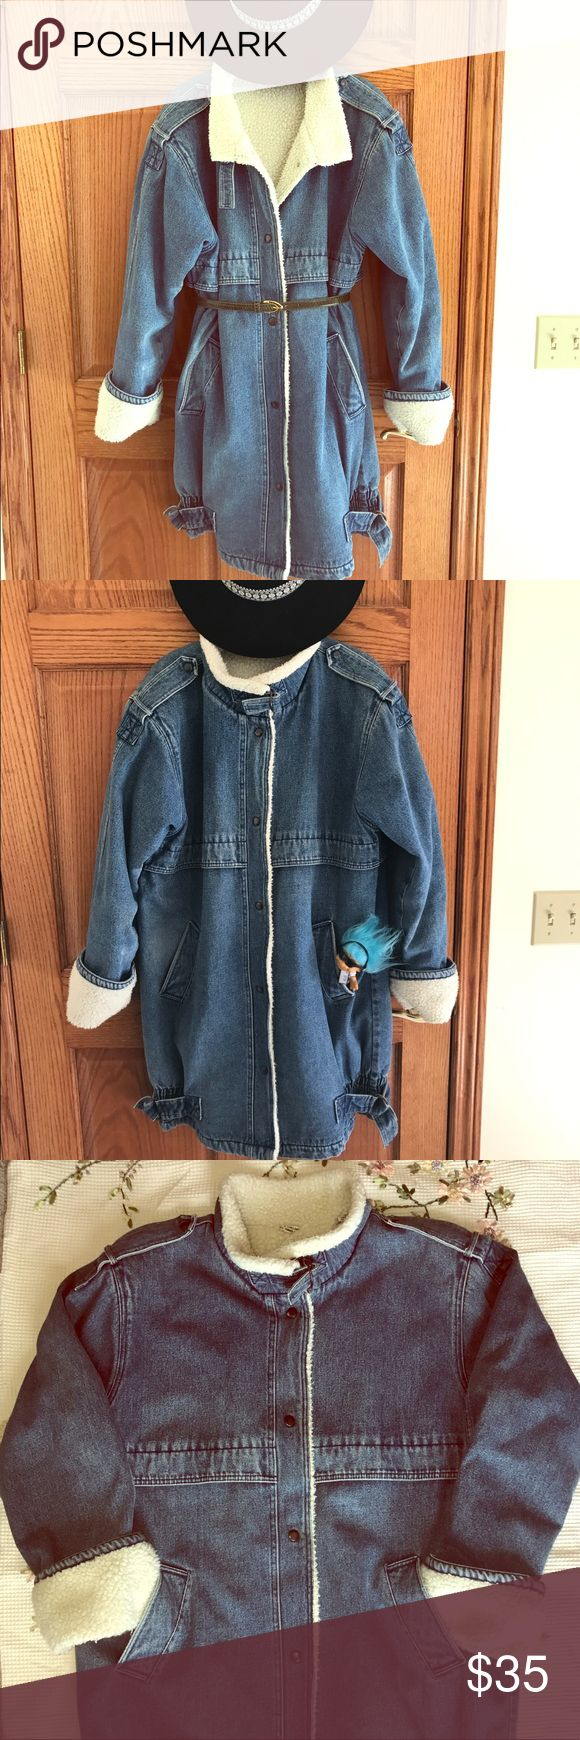 VINTAGE🔥 Stylish Wool-lined Denim Coat! 💕 Awesome vintage denim coat size large with wool-type fuzzy lining throughout, front pockets, snap button closure, and buckle accents at neck and bottom sides! Has button snaps at shoulders and slight shoulder pads inside as well. So versatile and fun!! In excellent vintage condition with some mild fading and only a small scratch on very top button as shown in last photo! Approx. measurements laying flat: chest- 24.5in, shoulders- 21in, length…